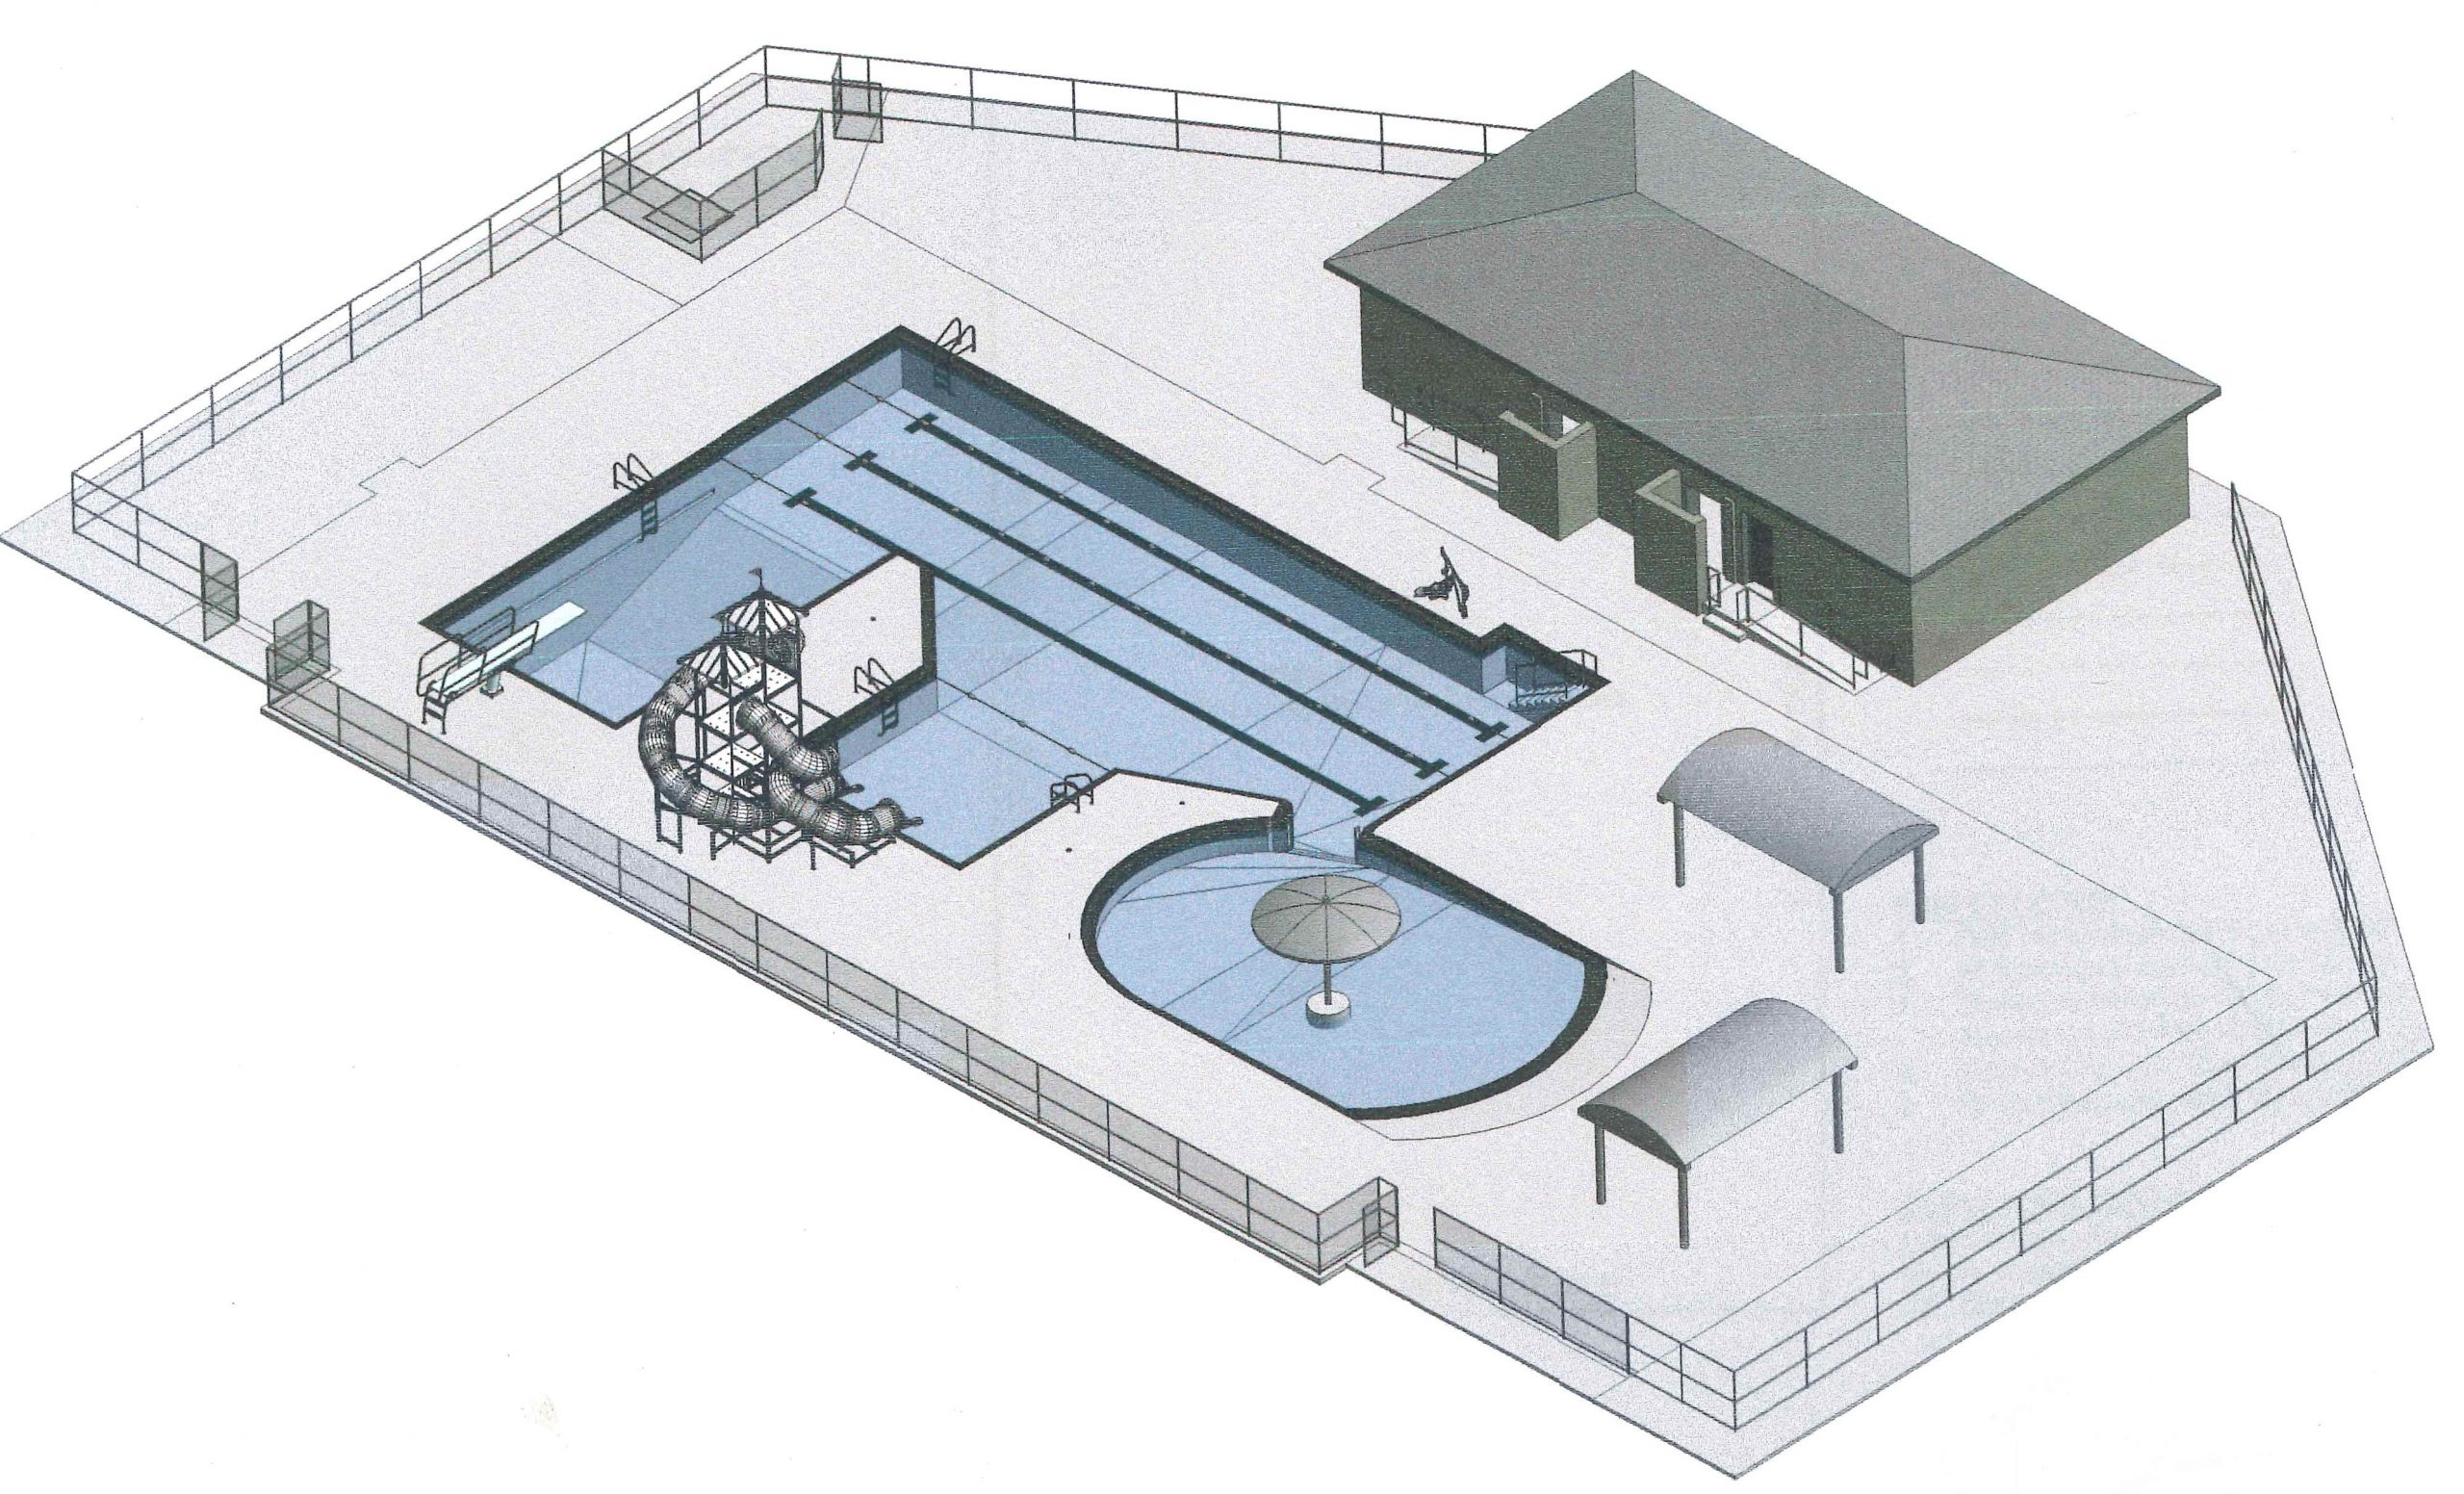 3D view of pool